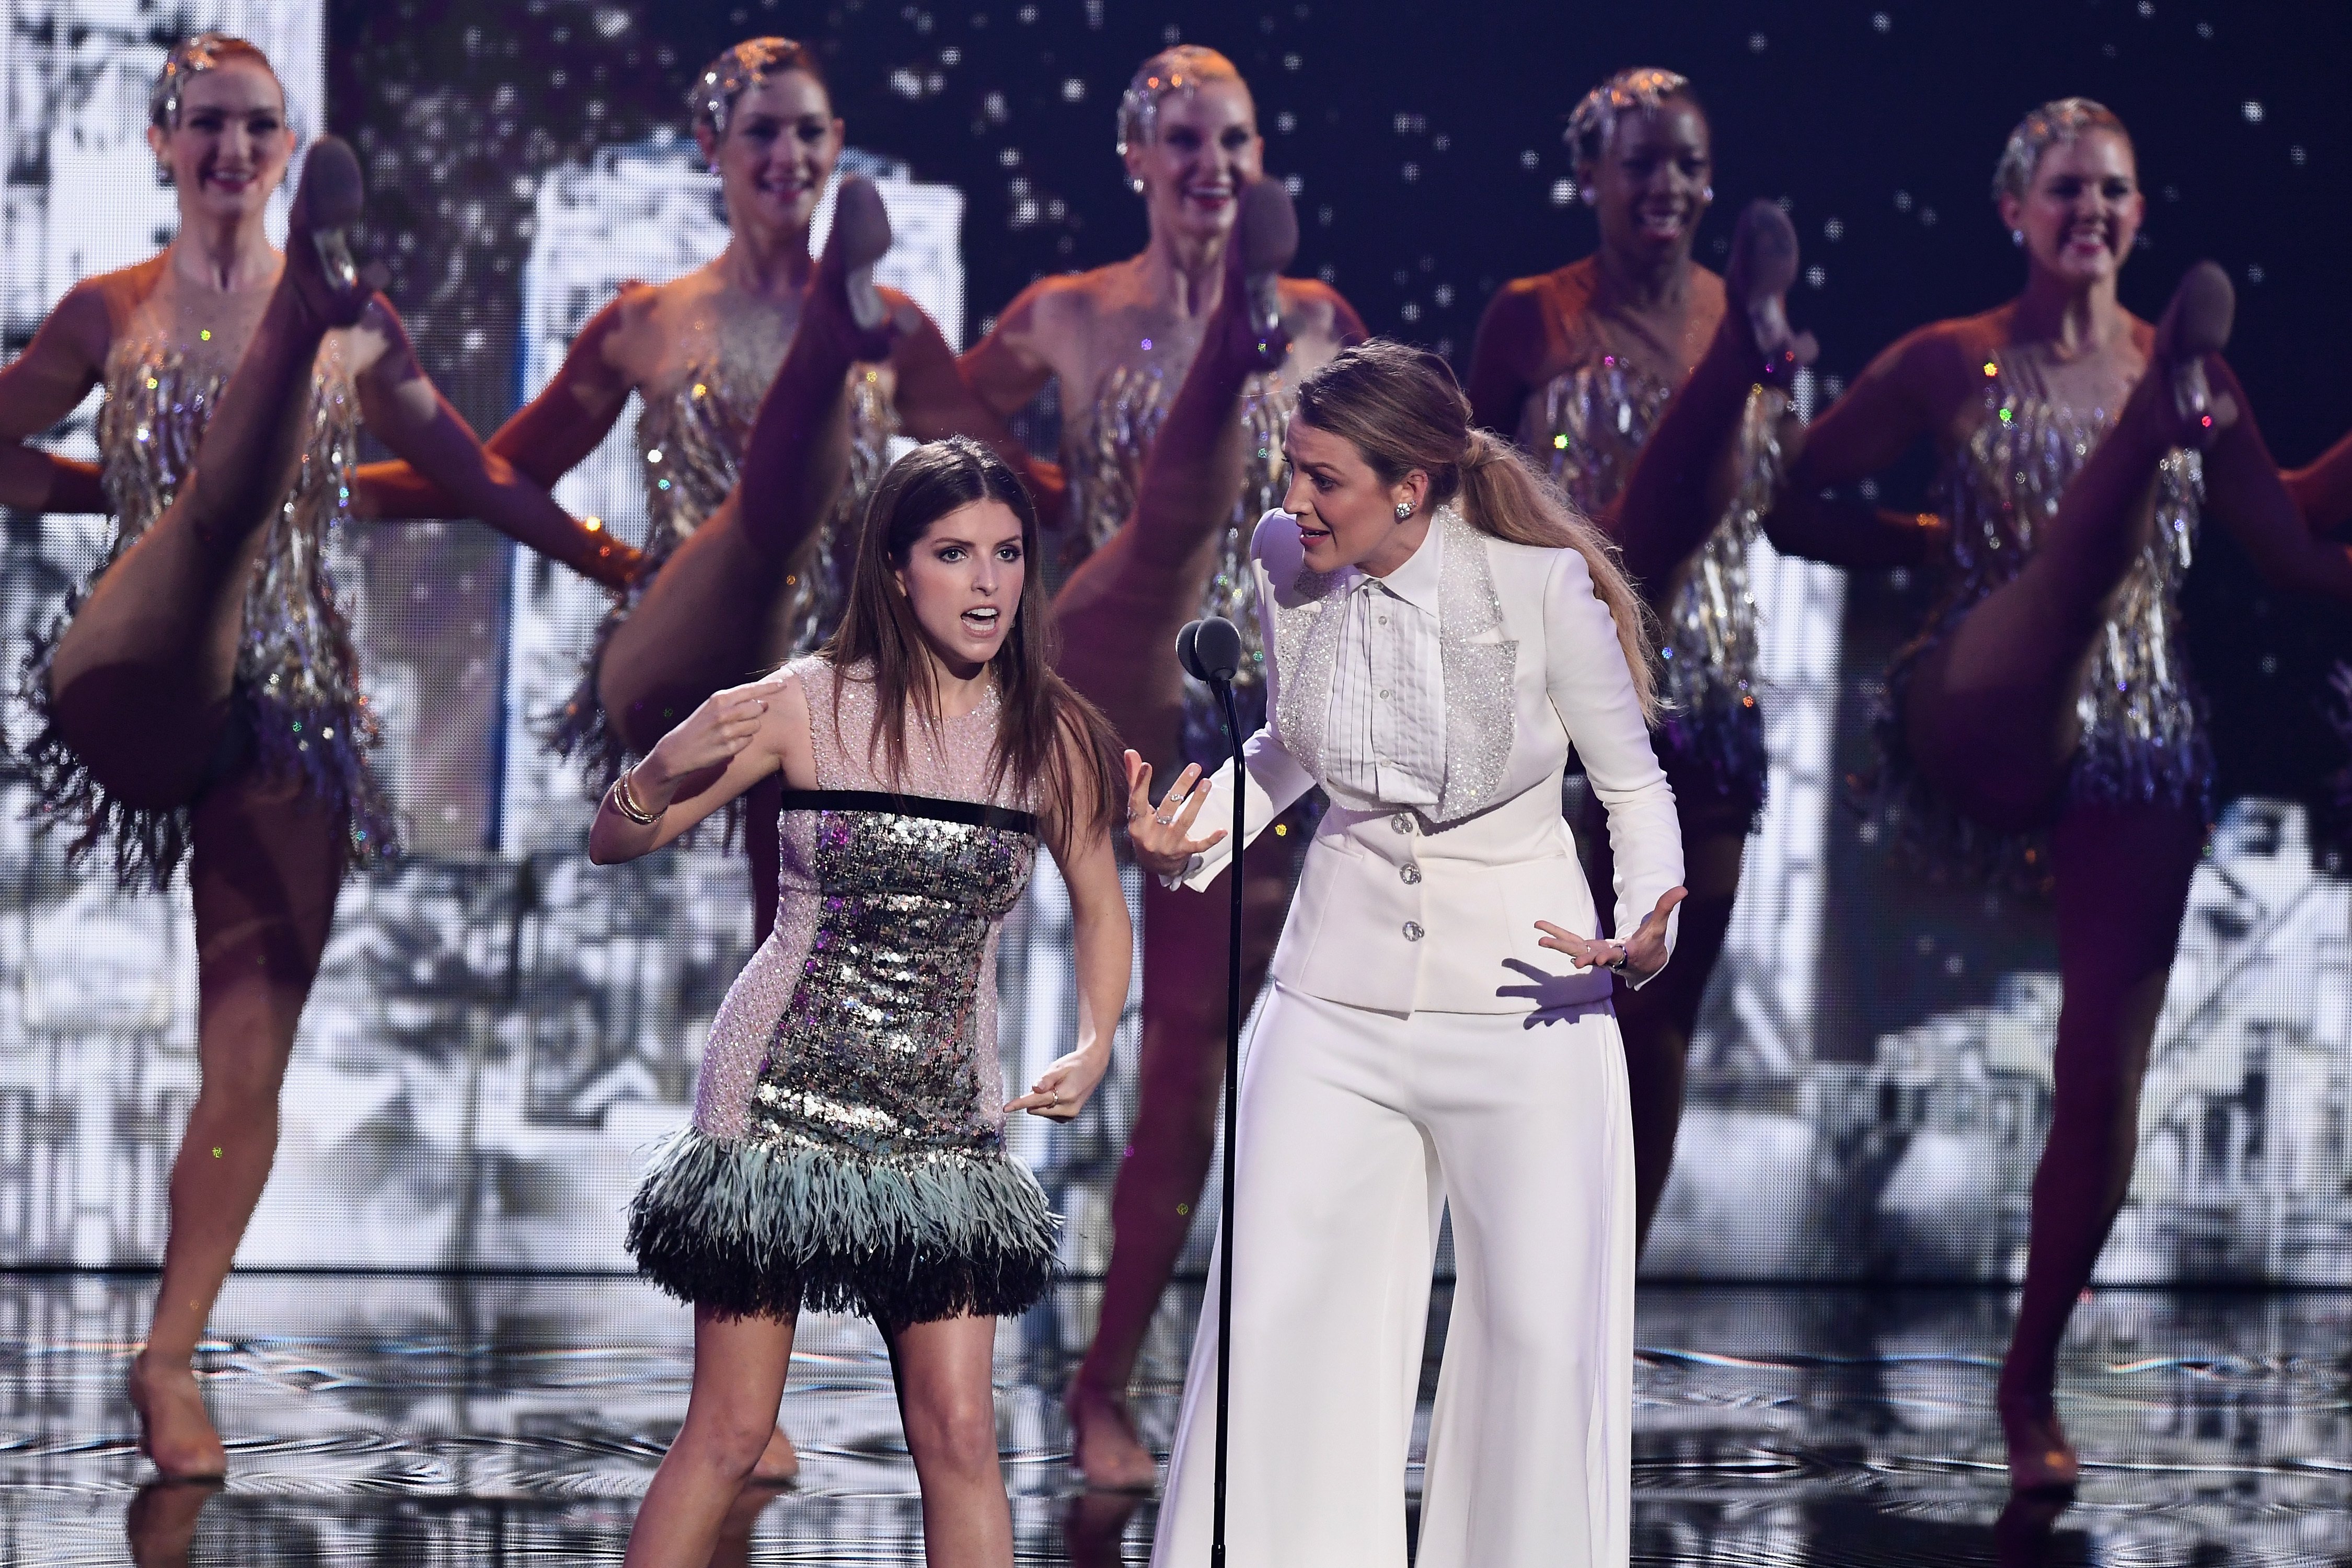 Anna Kendrick and Blake Lively present an award in front of The Rockettes during the MTV Video Music Awards at Radio City Music Hall in New York City on Aug. 20, 2018.